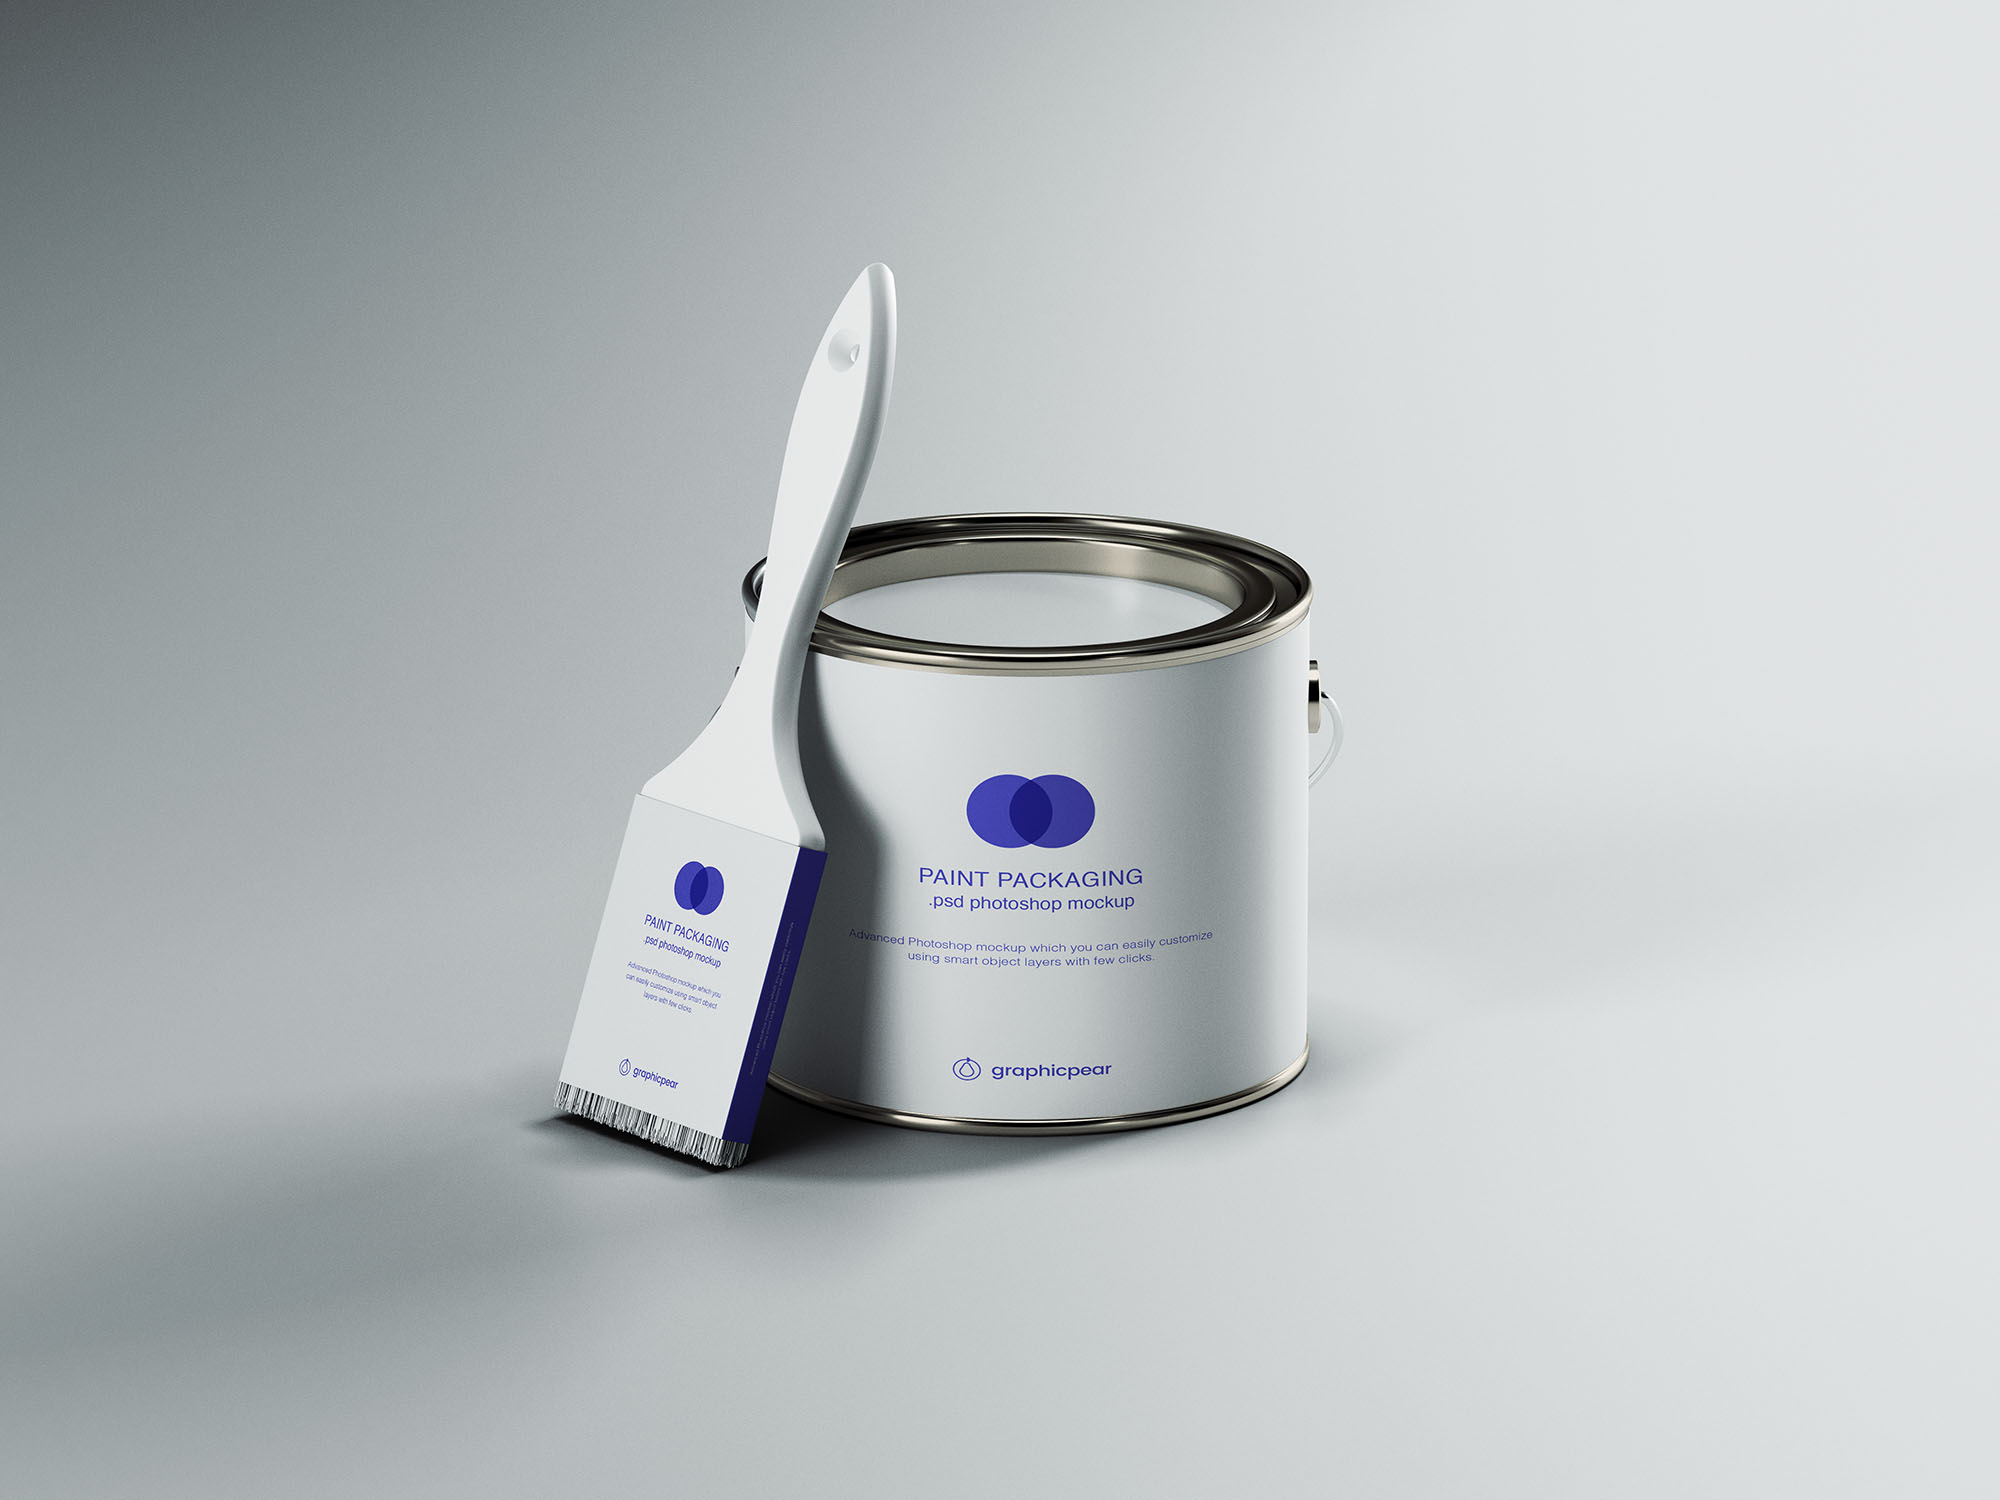 Free Paint Can & Brush Packaging Mockup (PSD)